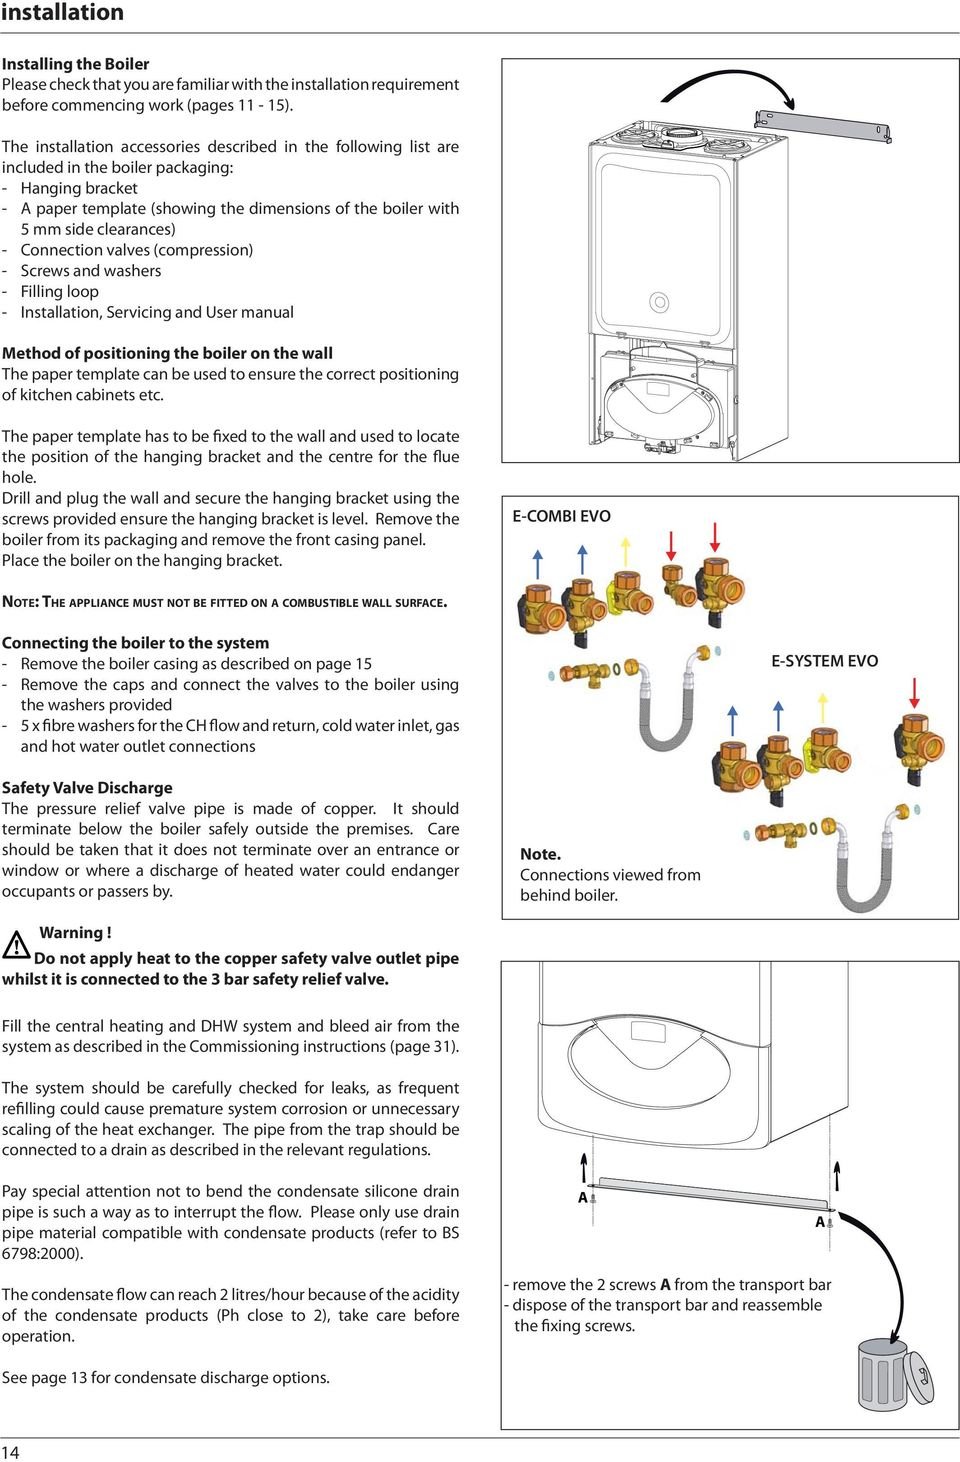 Awesome unvented system boiler elaboration wiring diagram ideas colorful unvented hot water cylinder installation diagram pattern asfbconference2016 Images